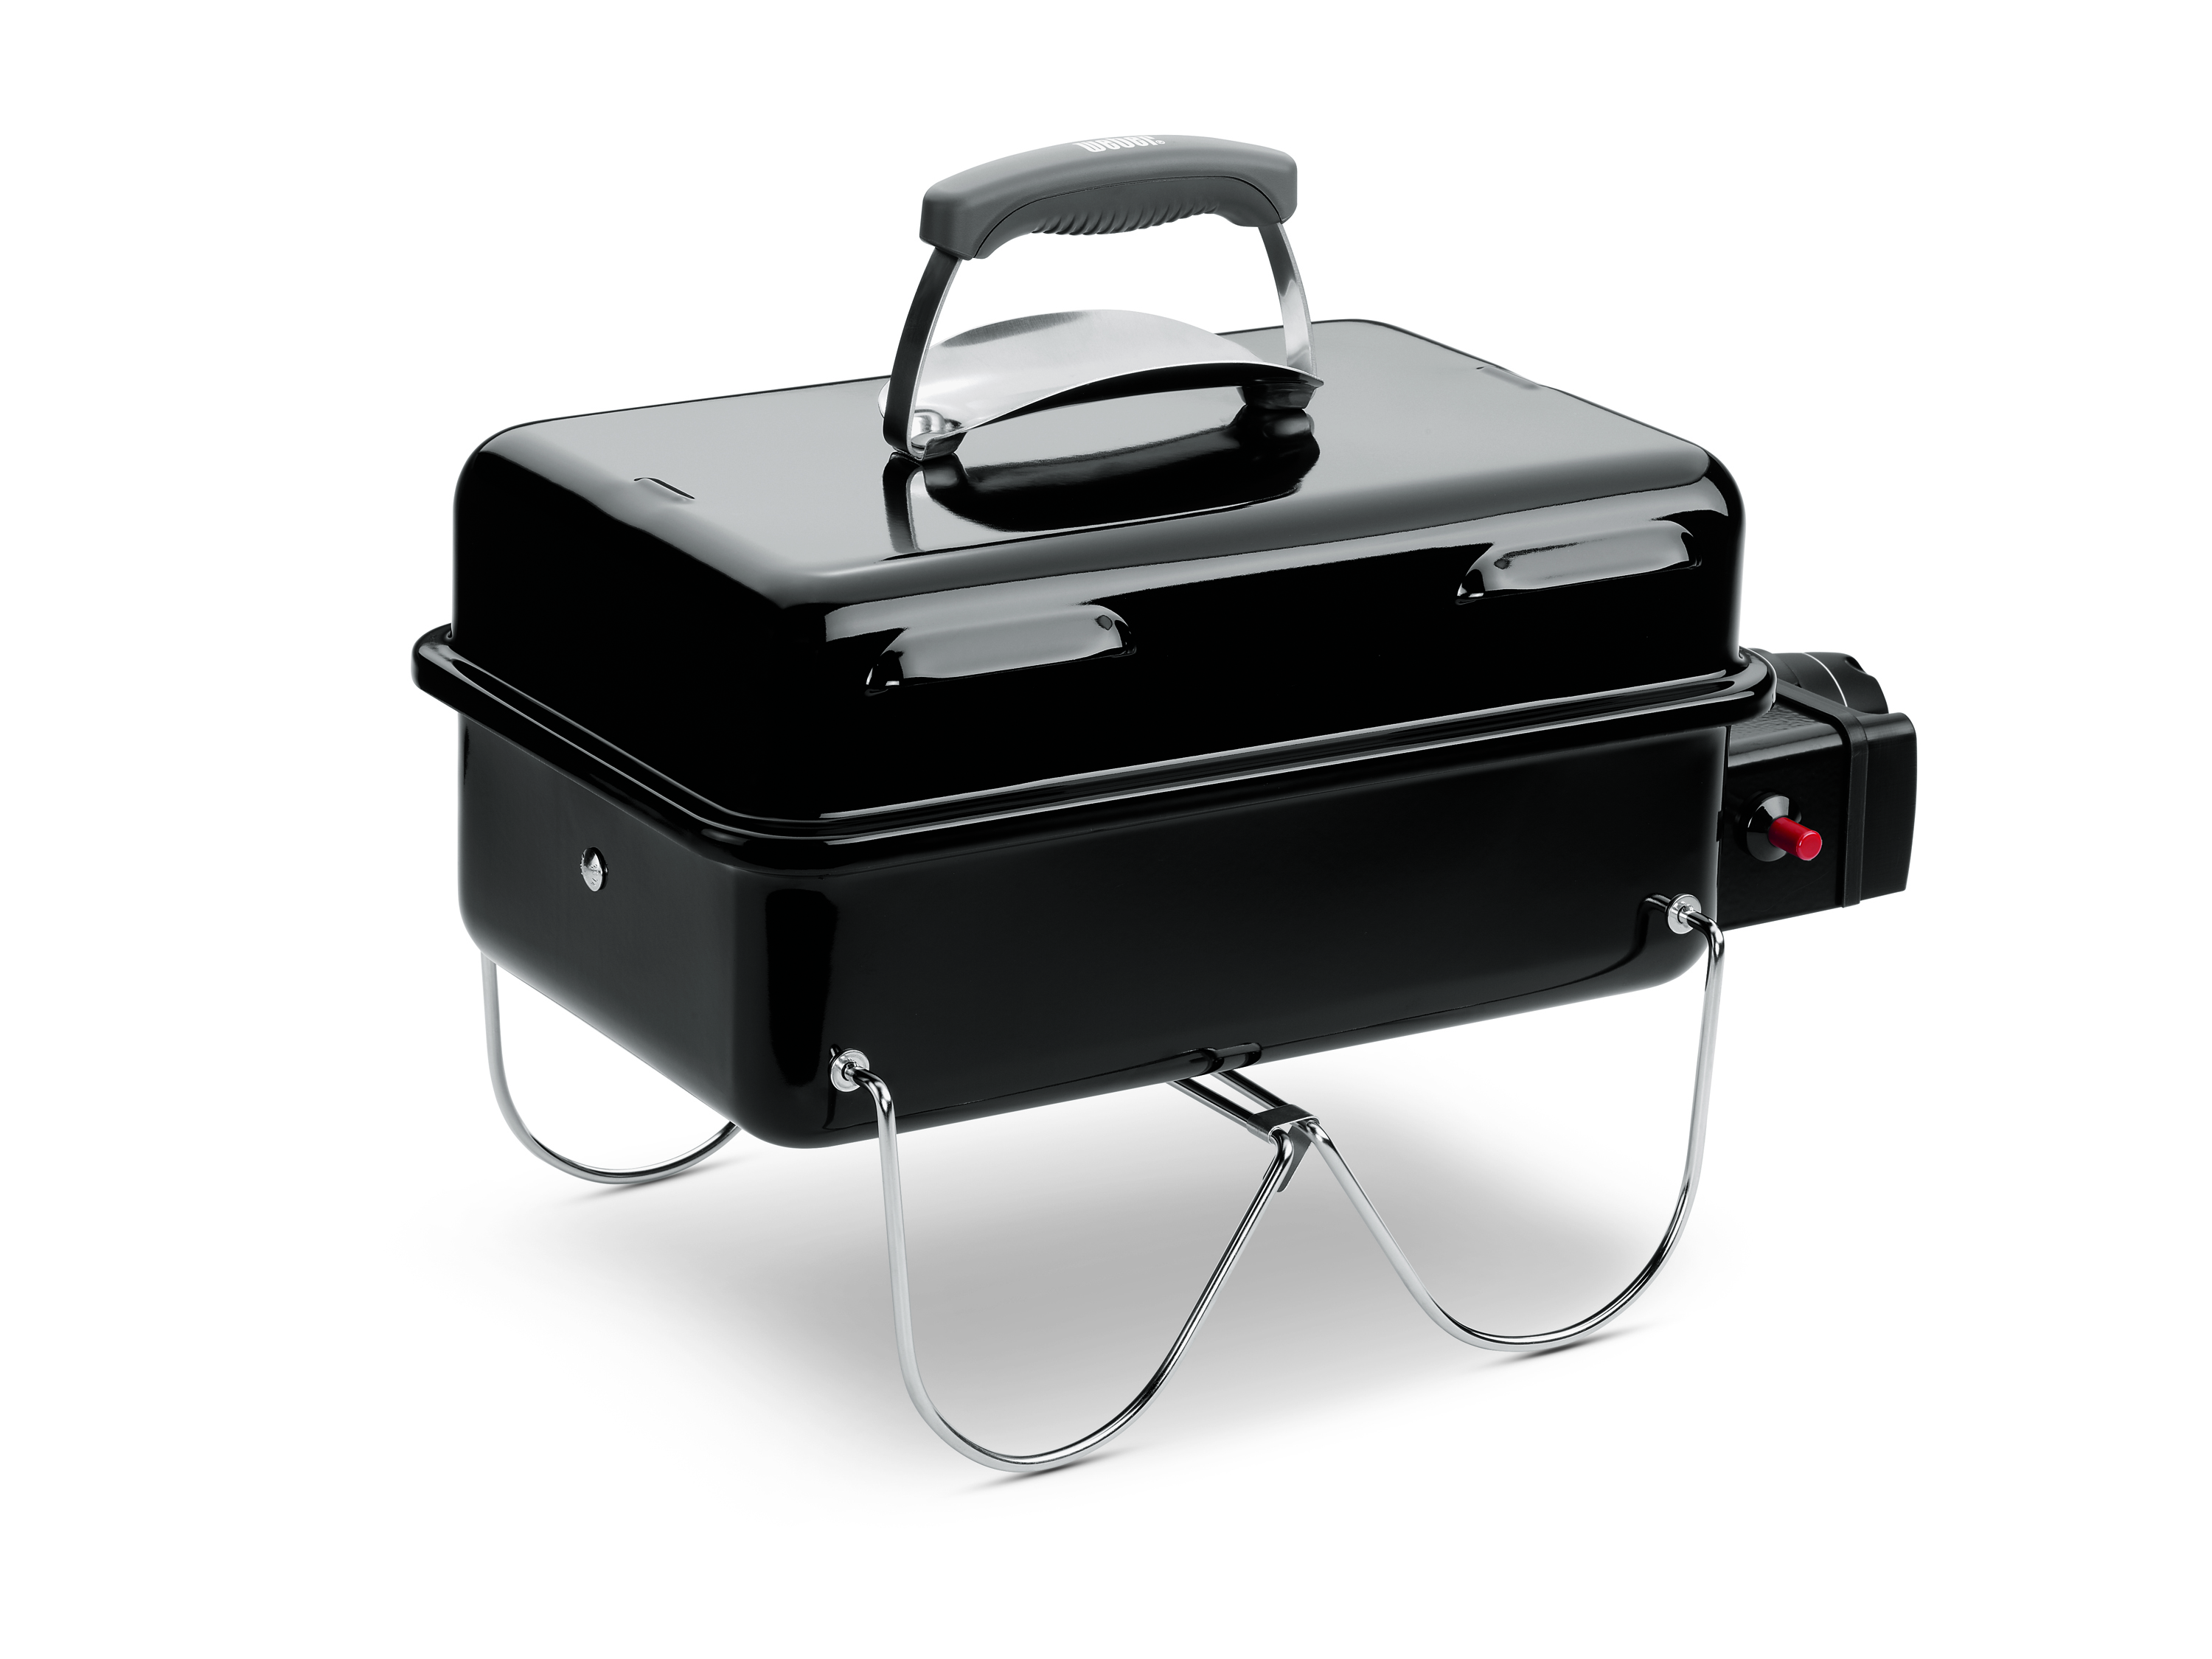 Weber Elektrogrill De : Weber go anywhere gas black go anywhere gasgrill grills